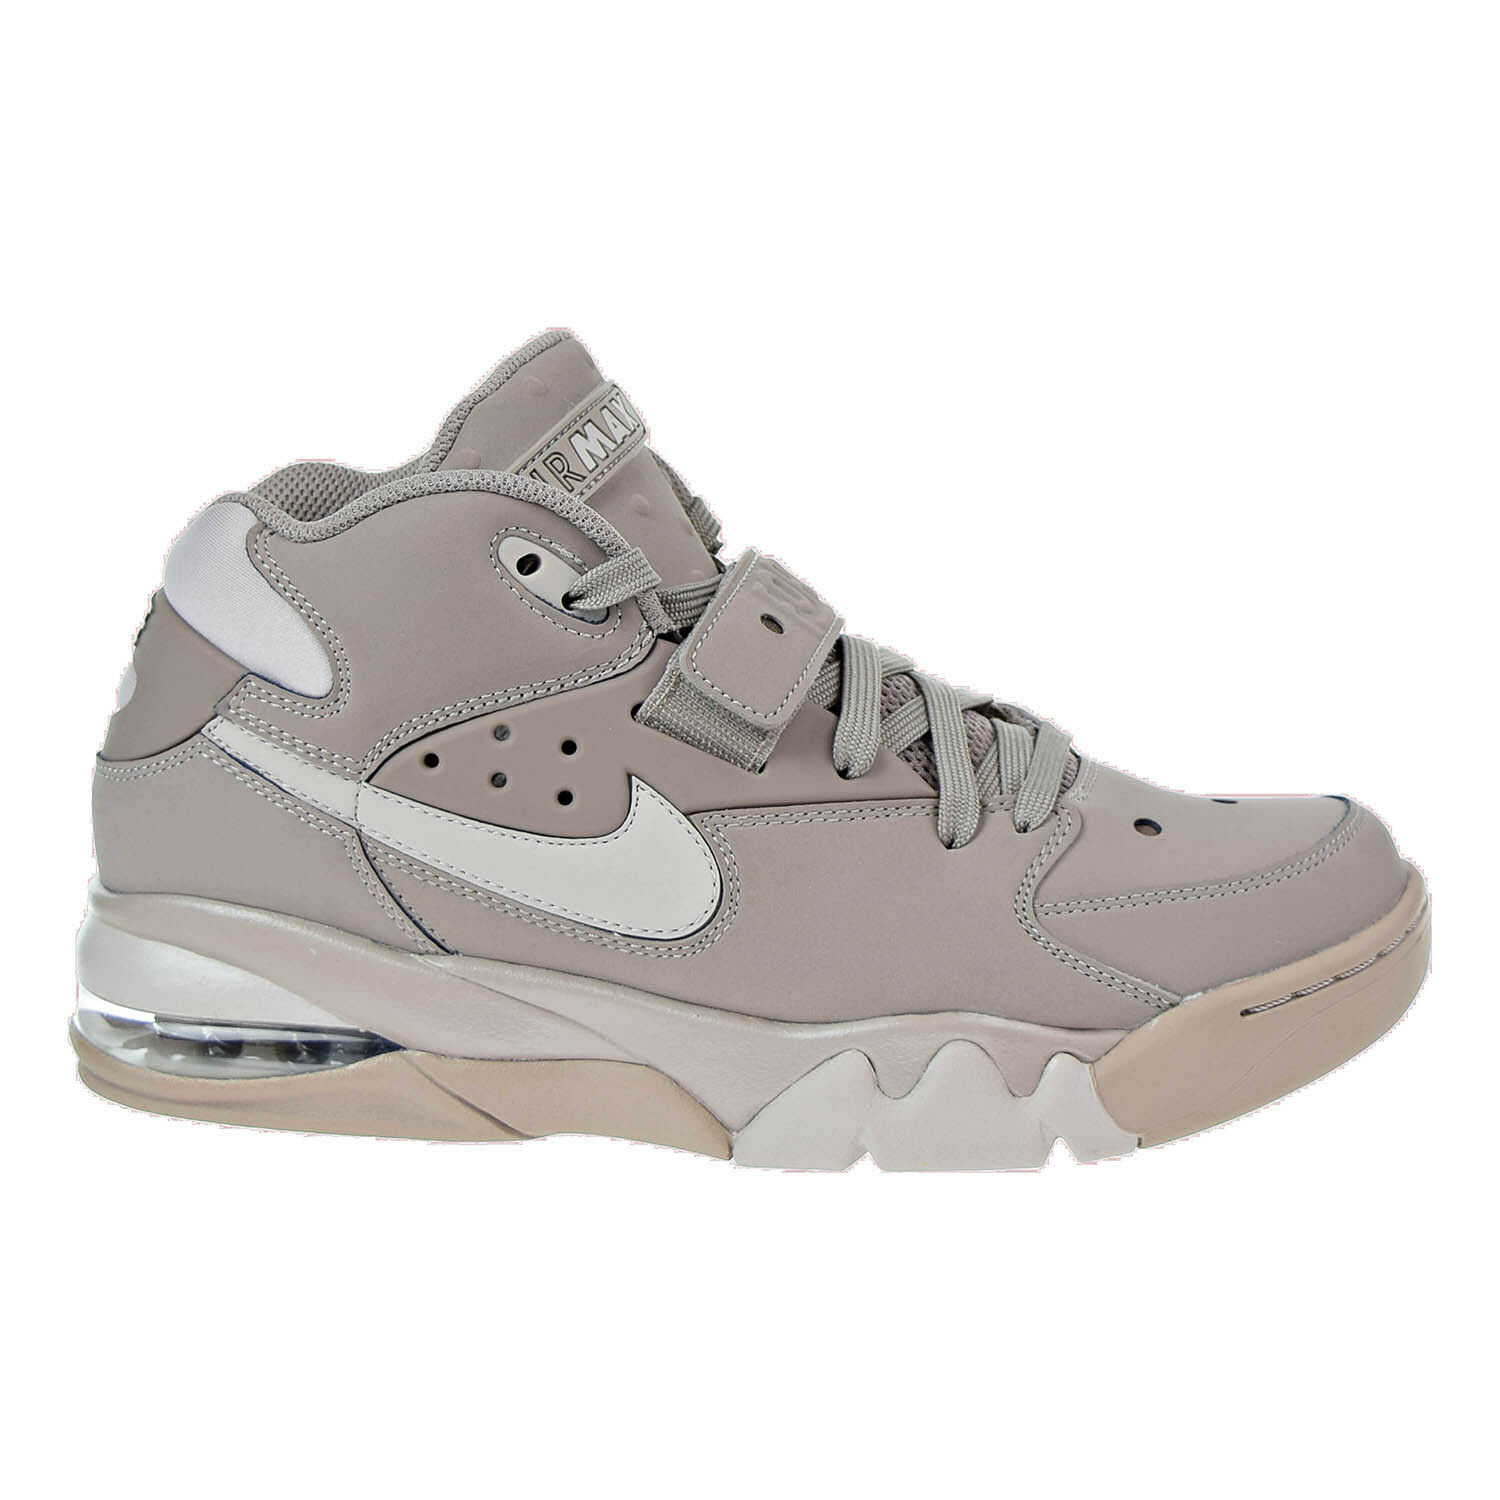 Nike Air Force Max Mens's Shoes Sepia Stone/Moon Particle AH5534-200